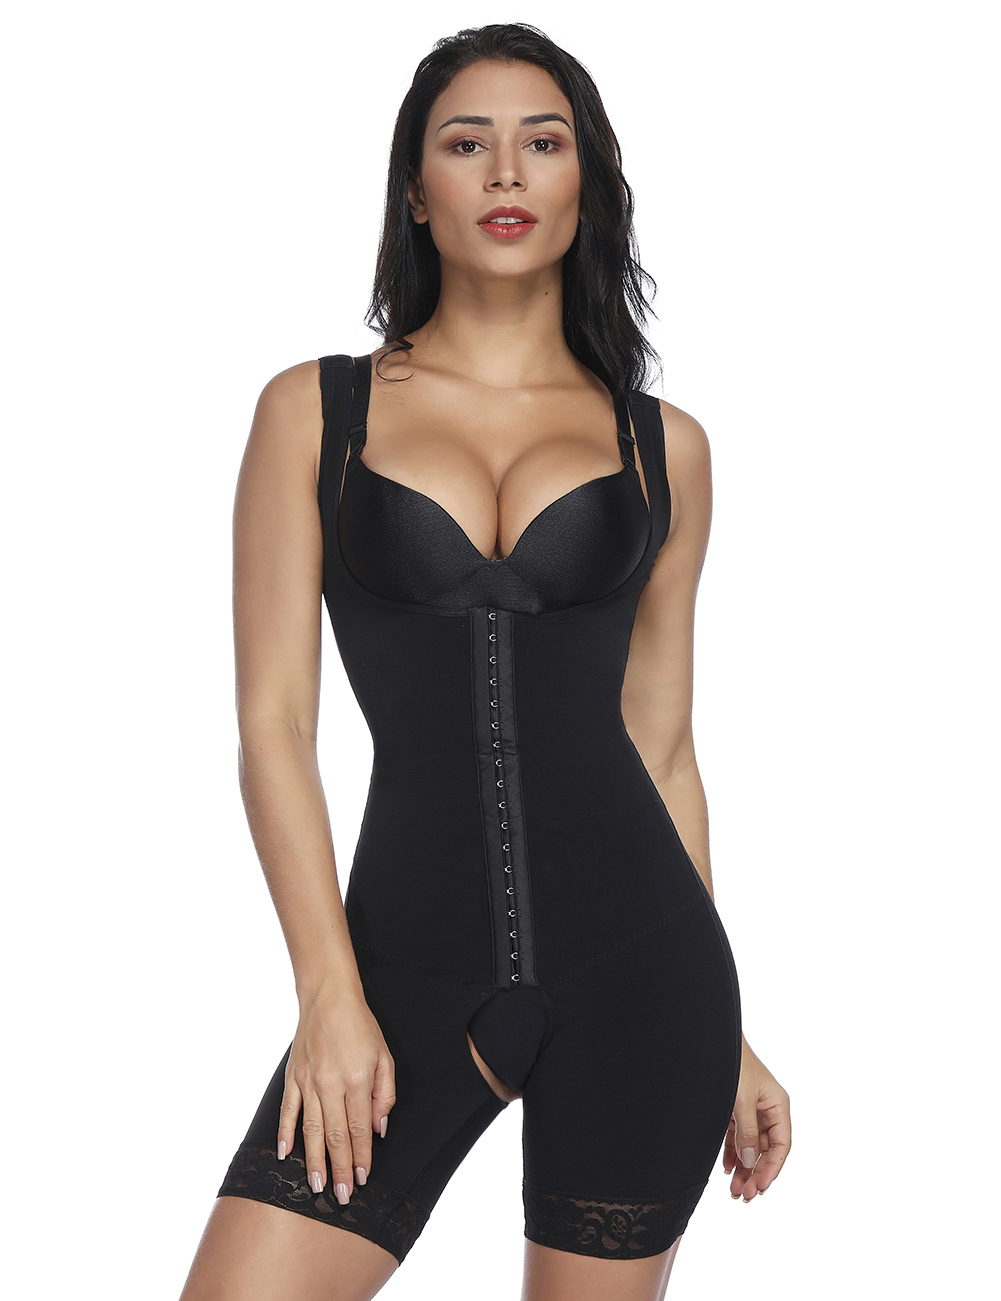 //cdn.affectcloud.com/hexinfashion/upload/imgs/Shaper/Body_Shaper/B180118-BK1/B180118-BK1-201911055dc12175b9ecd.jpg